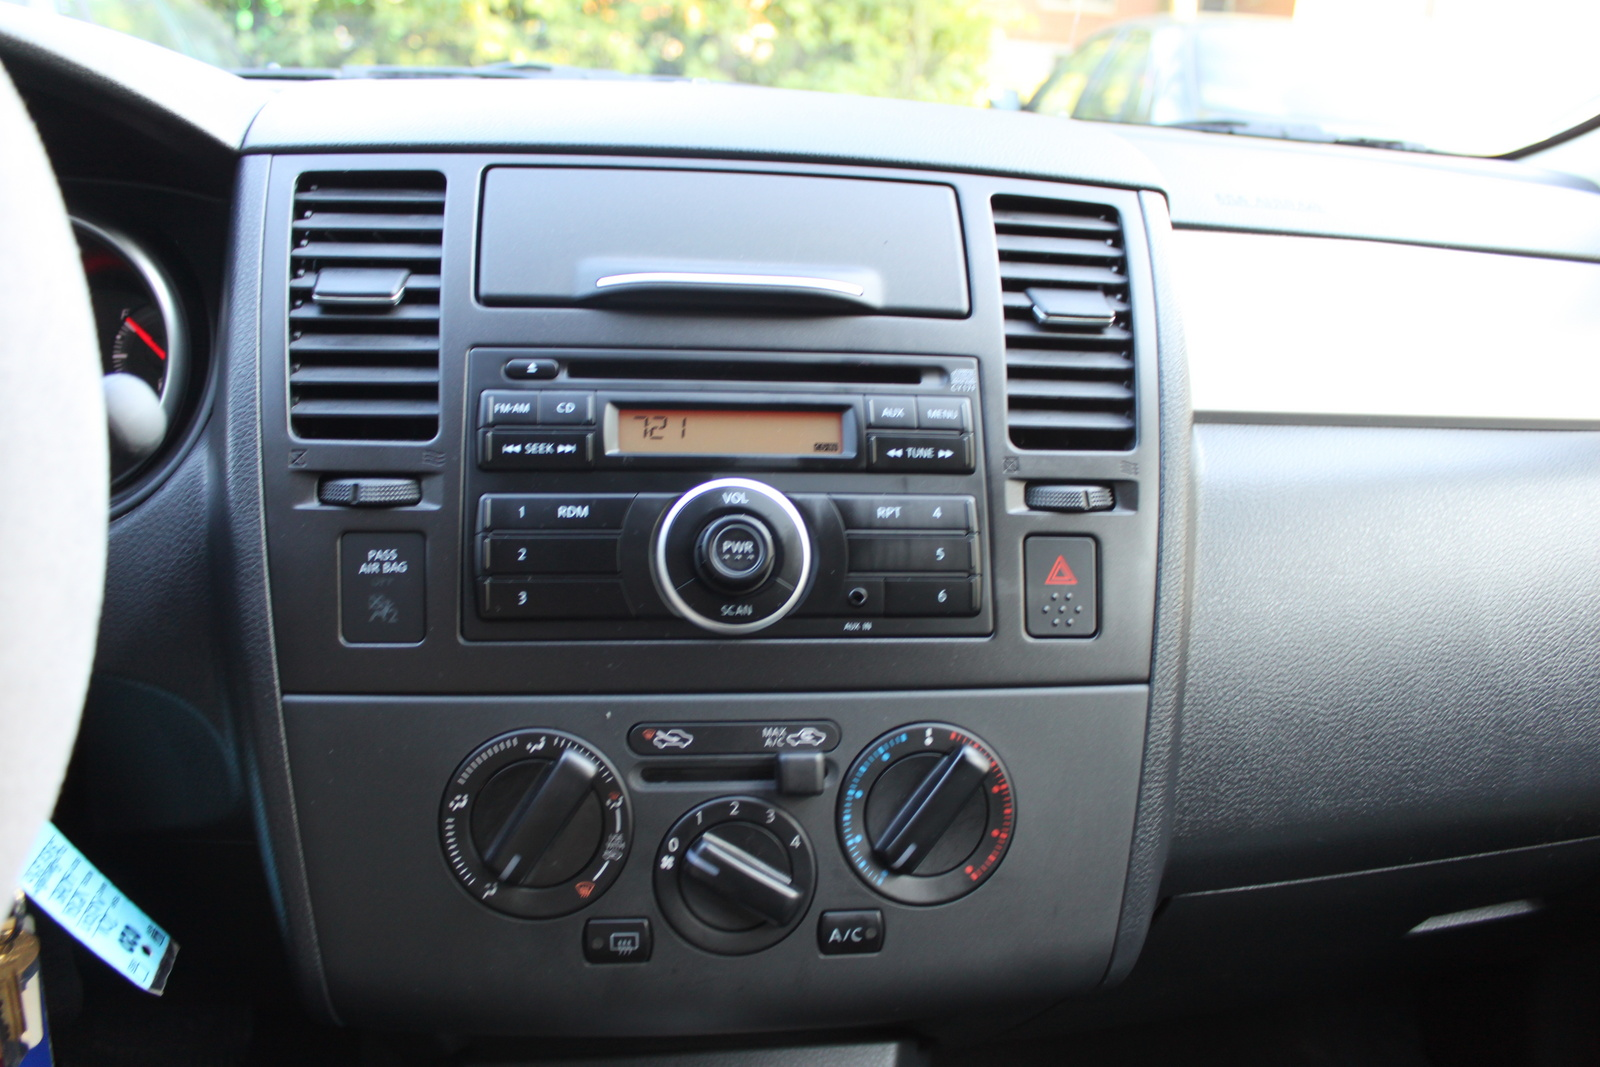 07 Nissan Sentra Aftermarket Touchscreen Gps Stereo